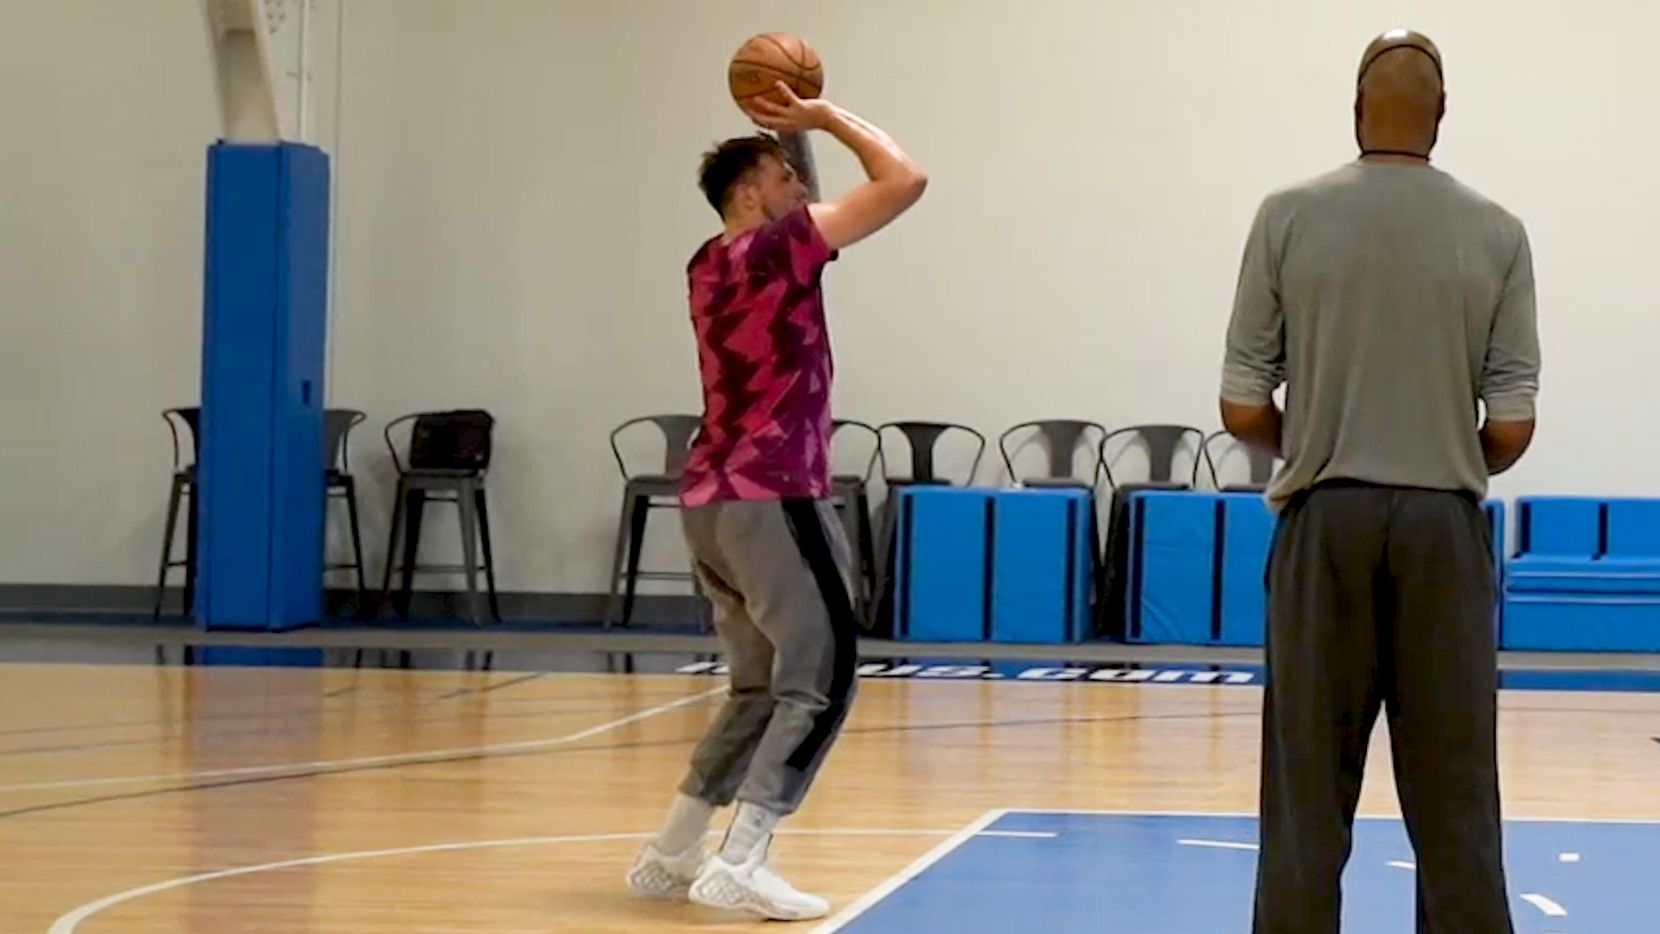 Dallas Mavericks guard Luka Doncic practices free throws from the first mandatory workout on July 1, 2020. Doncic and others played at the team's practice facility for the first time since the coronavirus pandemic started in Dallas.  (Photo courtesy Dallas Mavericks)